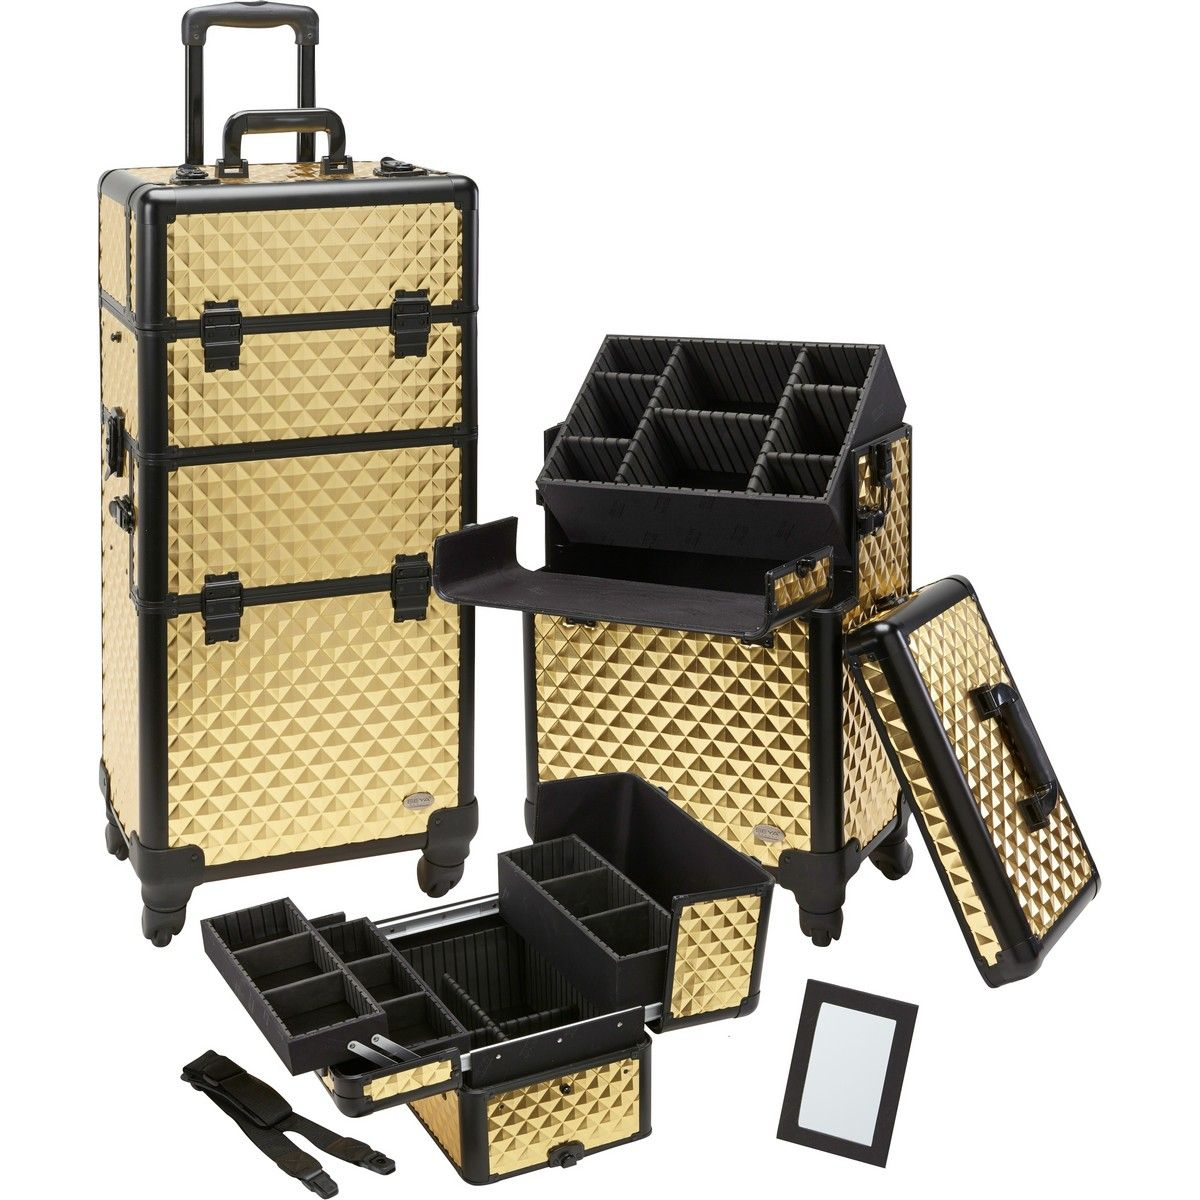 Pro Aluminum Makeup Case Gold Diamond 4 Wheeled Spinner